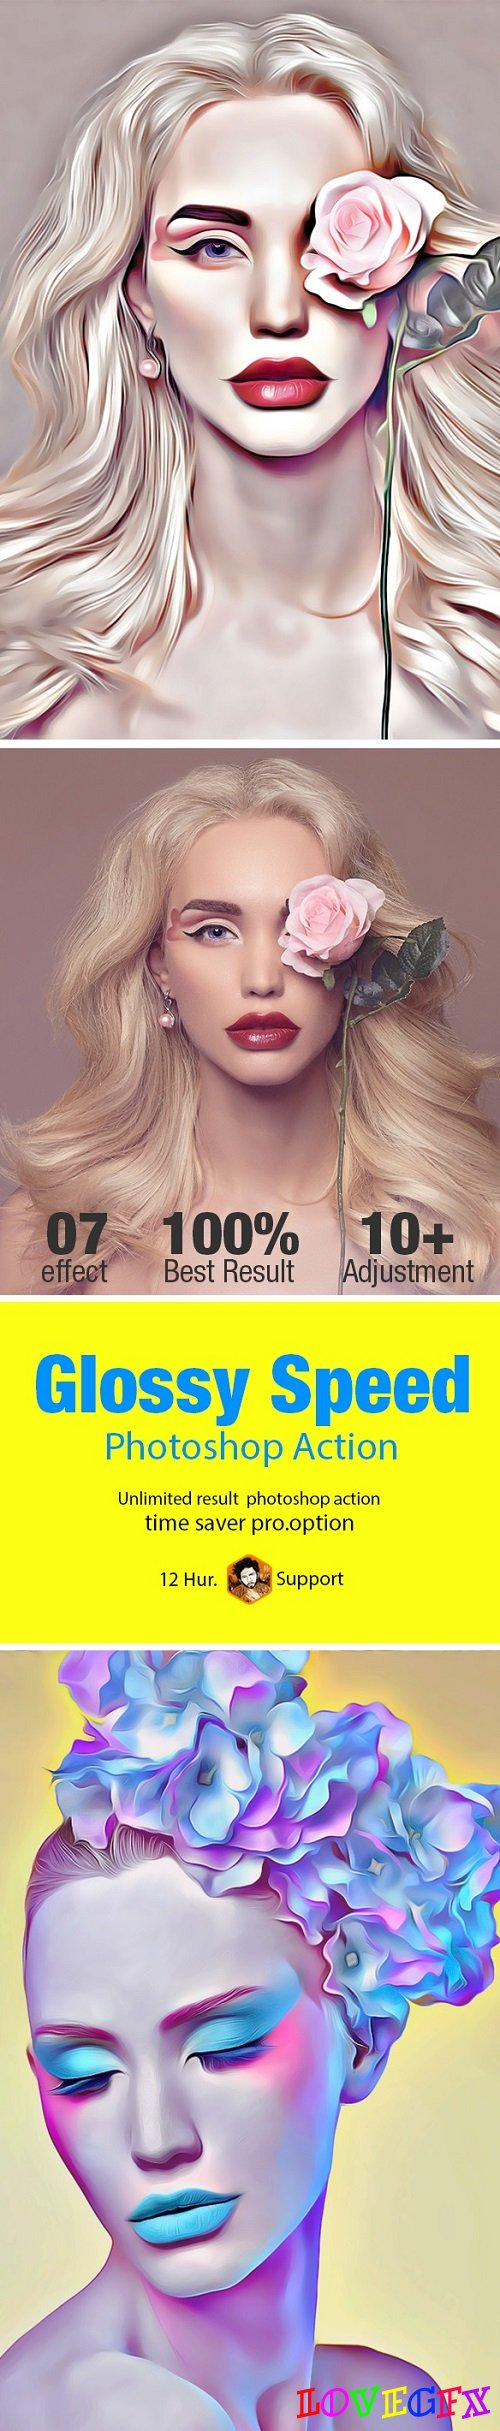 Glossy Speed Art Action 21189938